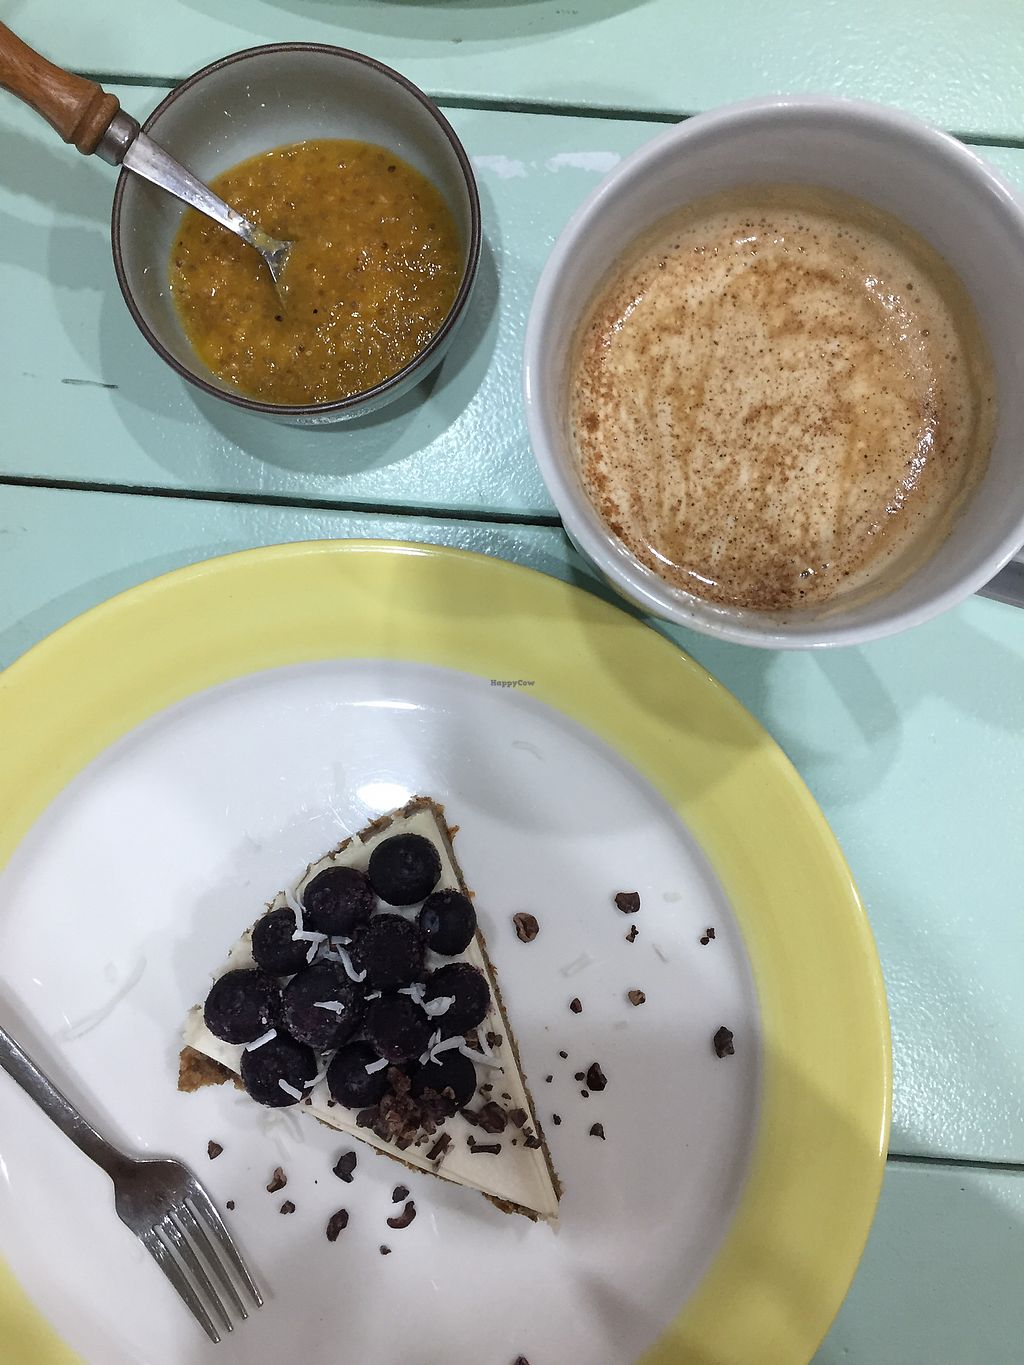 """Photo of Jack and the Beanstalk  by <a href=""""/members/profile/LindseyOtterbourg"""">LindseyOtterbourg</a> <br/>Coconut milk latte, cake and jam <br/> December 10, 2017  - <a href='/contact/abuse/image/47910/334194'>Report</a>"""